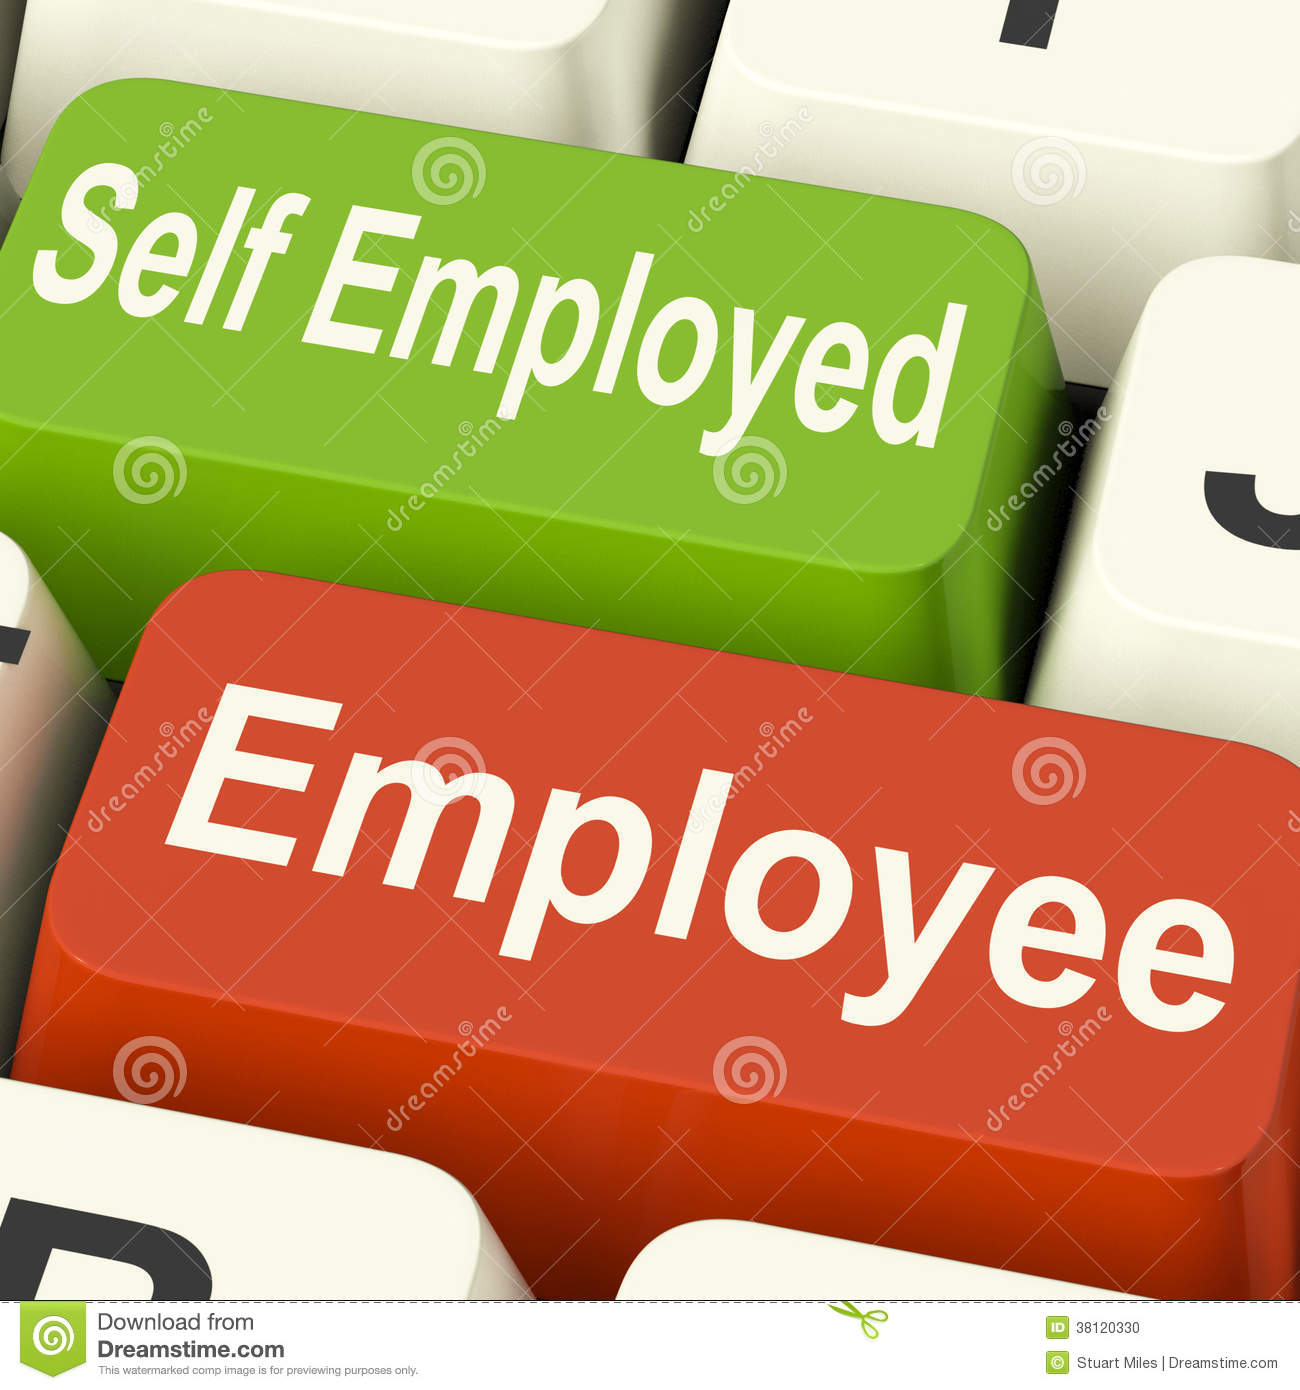 Employee Self Employed